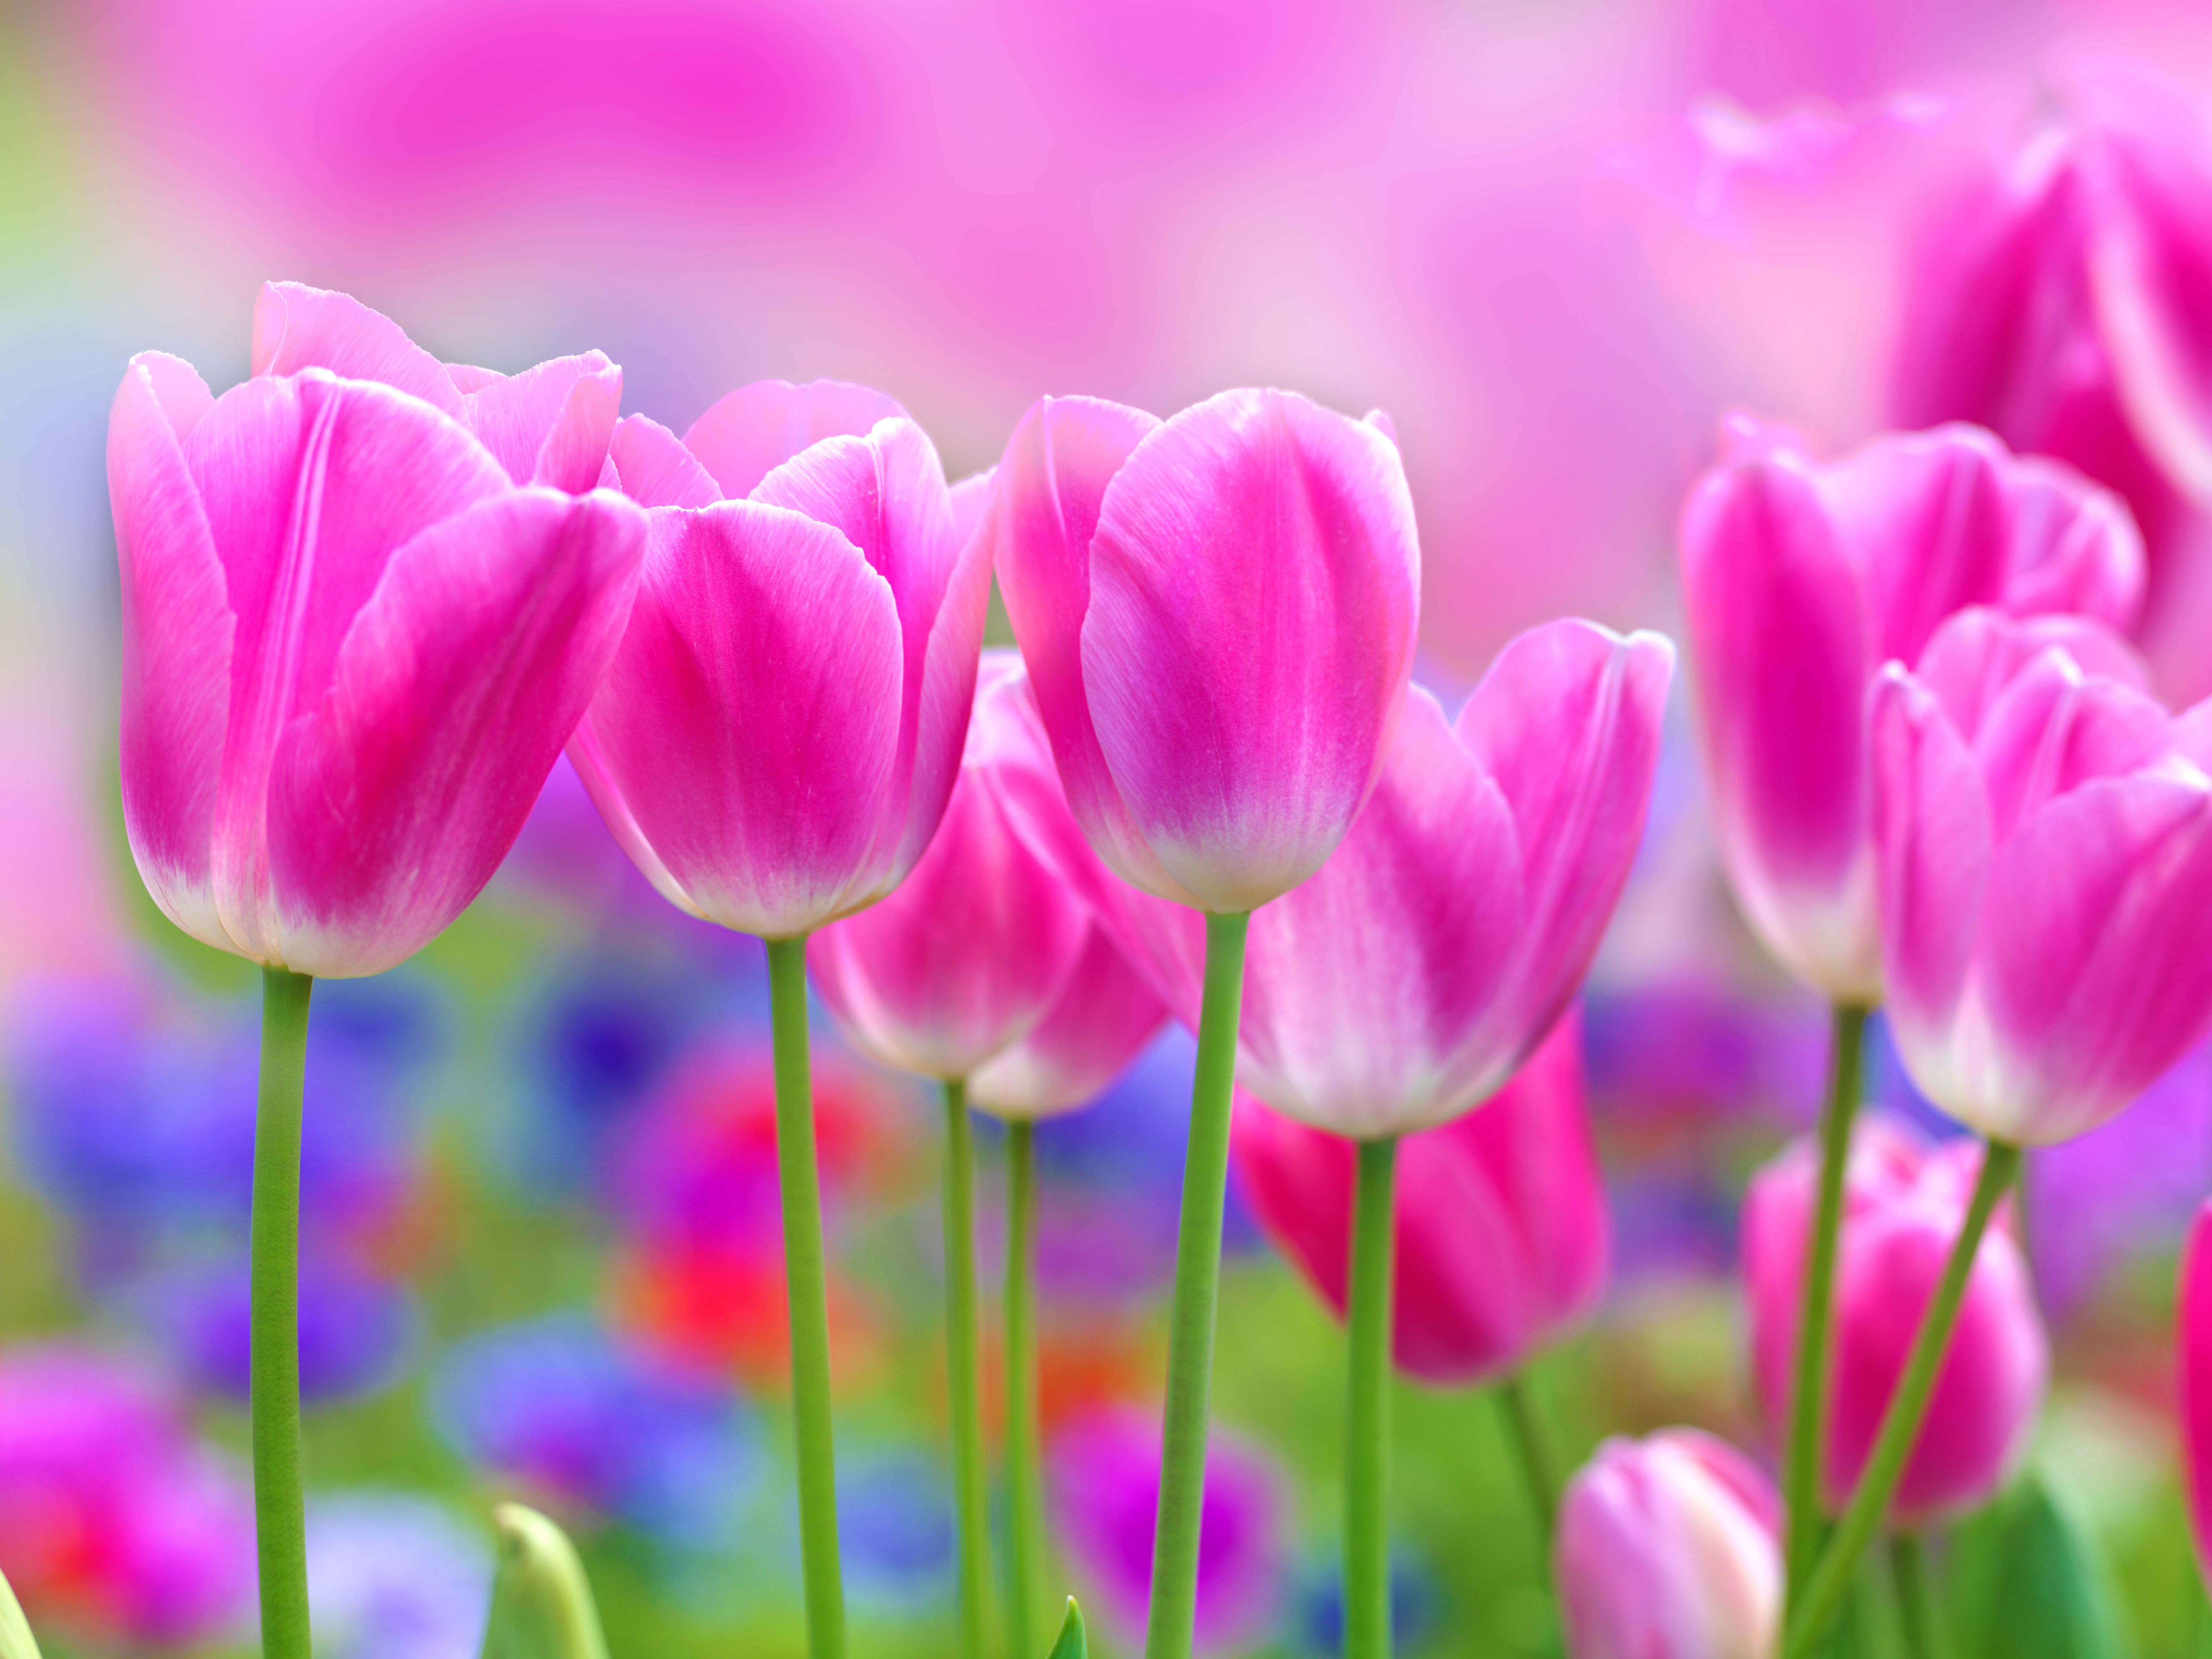 FLOWERS WALLPAPERS FULL HD FREE Wallpapers Background images 5304x3978